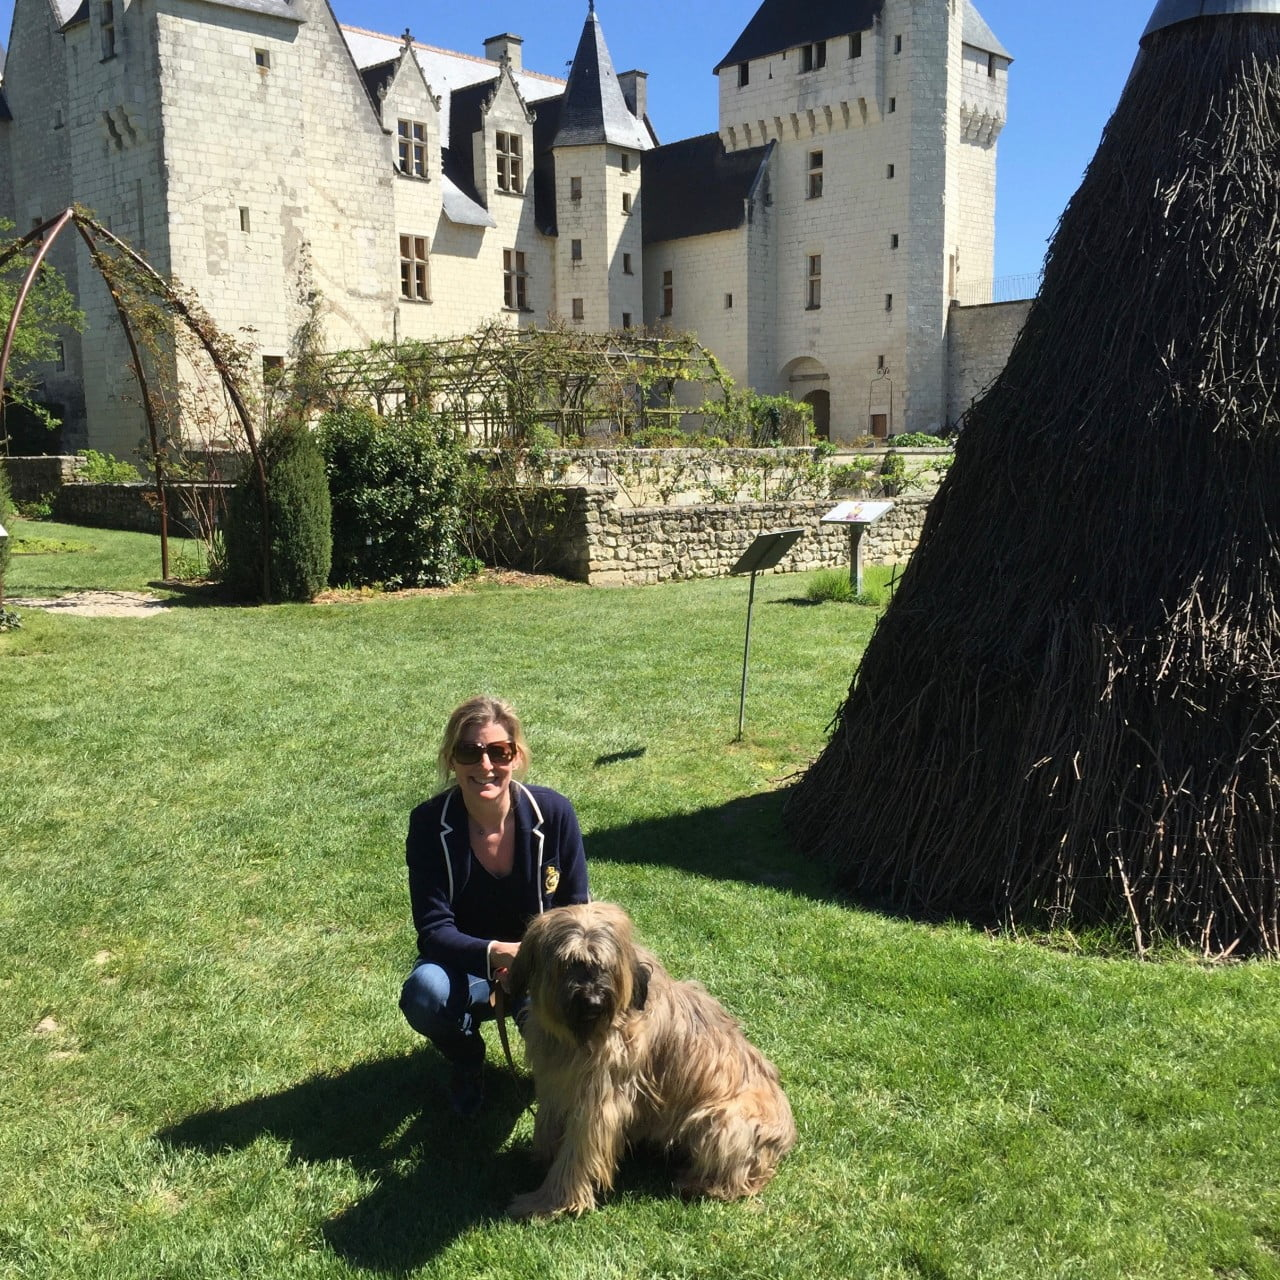 This is me & my dog Charlie in a beautiful chateau garden in the Loire